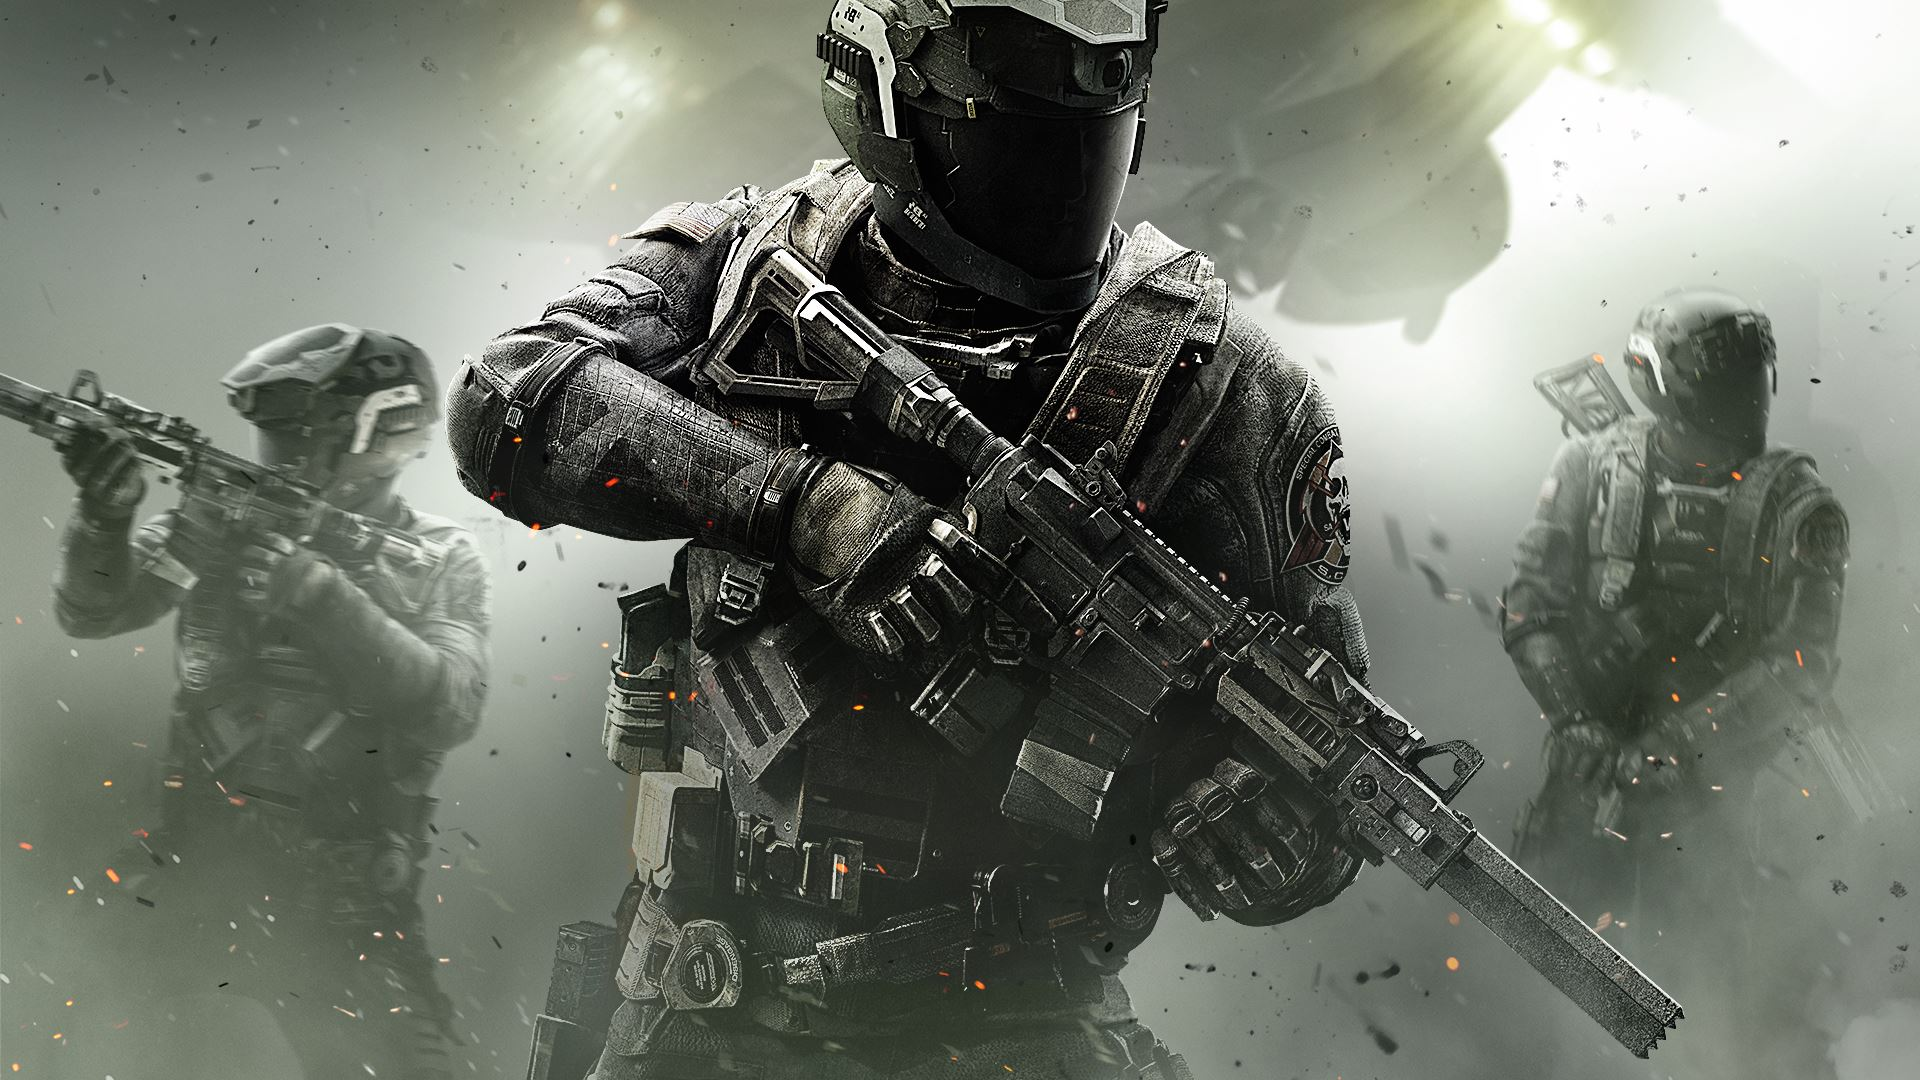 epic call of duty wallpaper phone